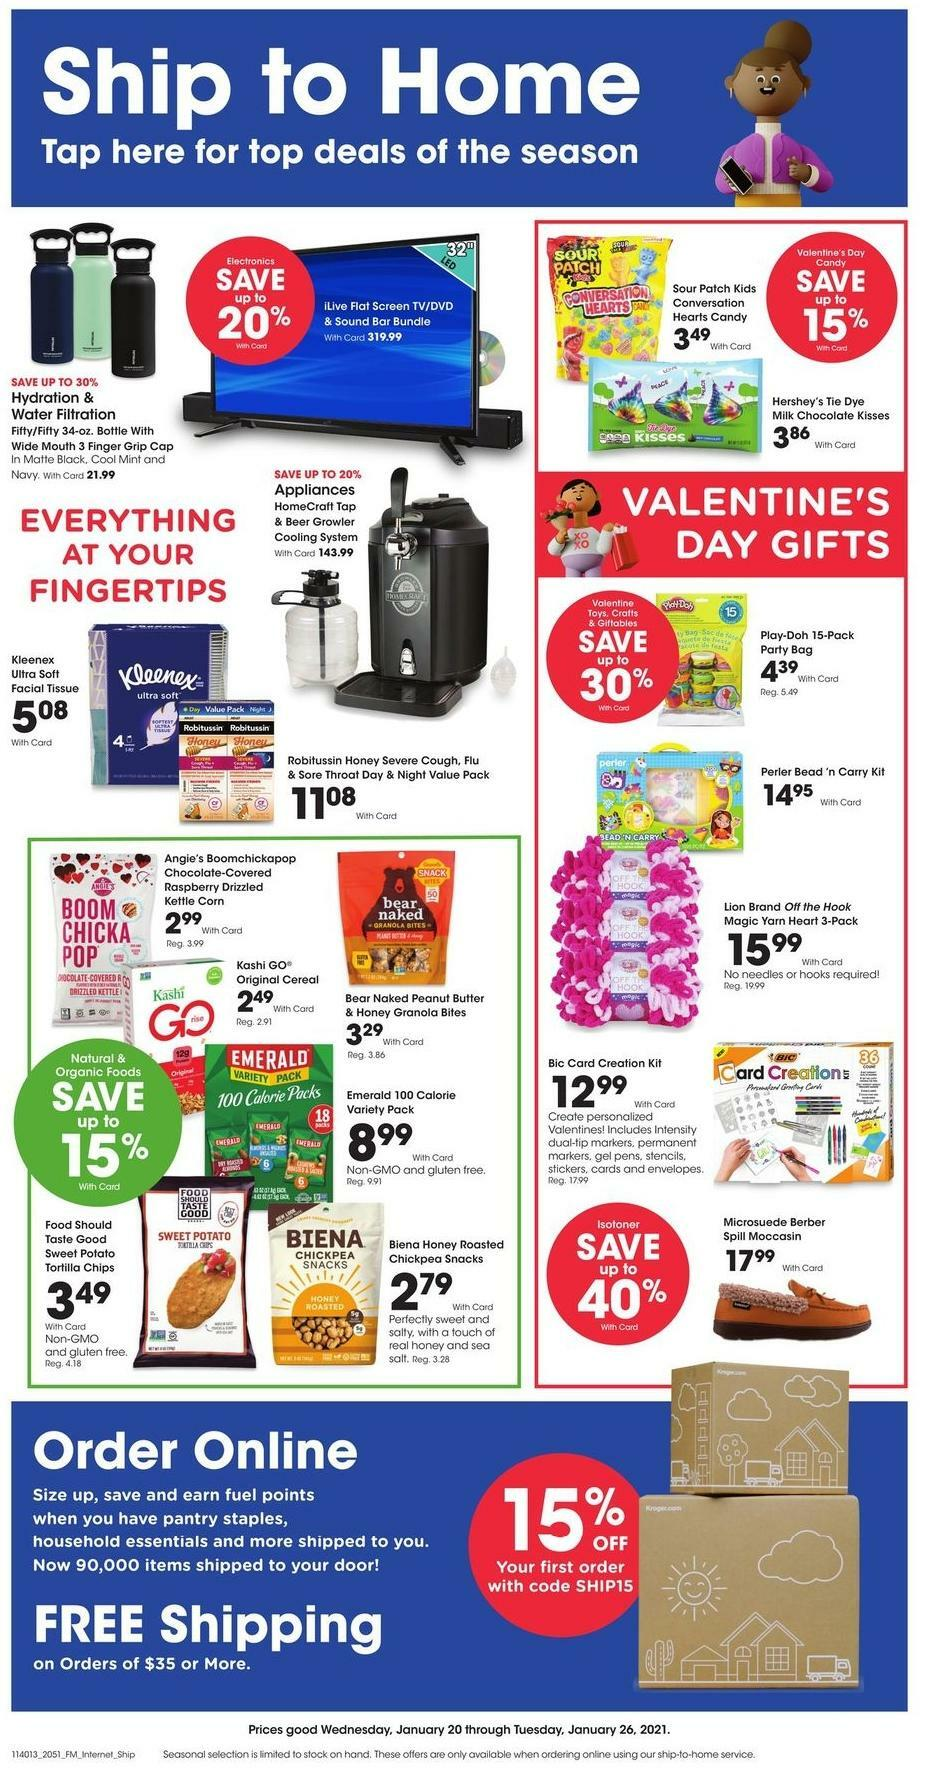 Kroger Ship to Home Weekly Ad from January 20